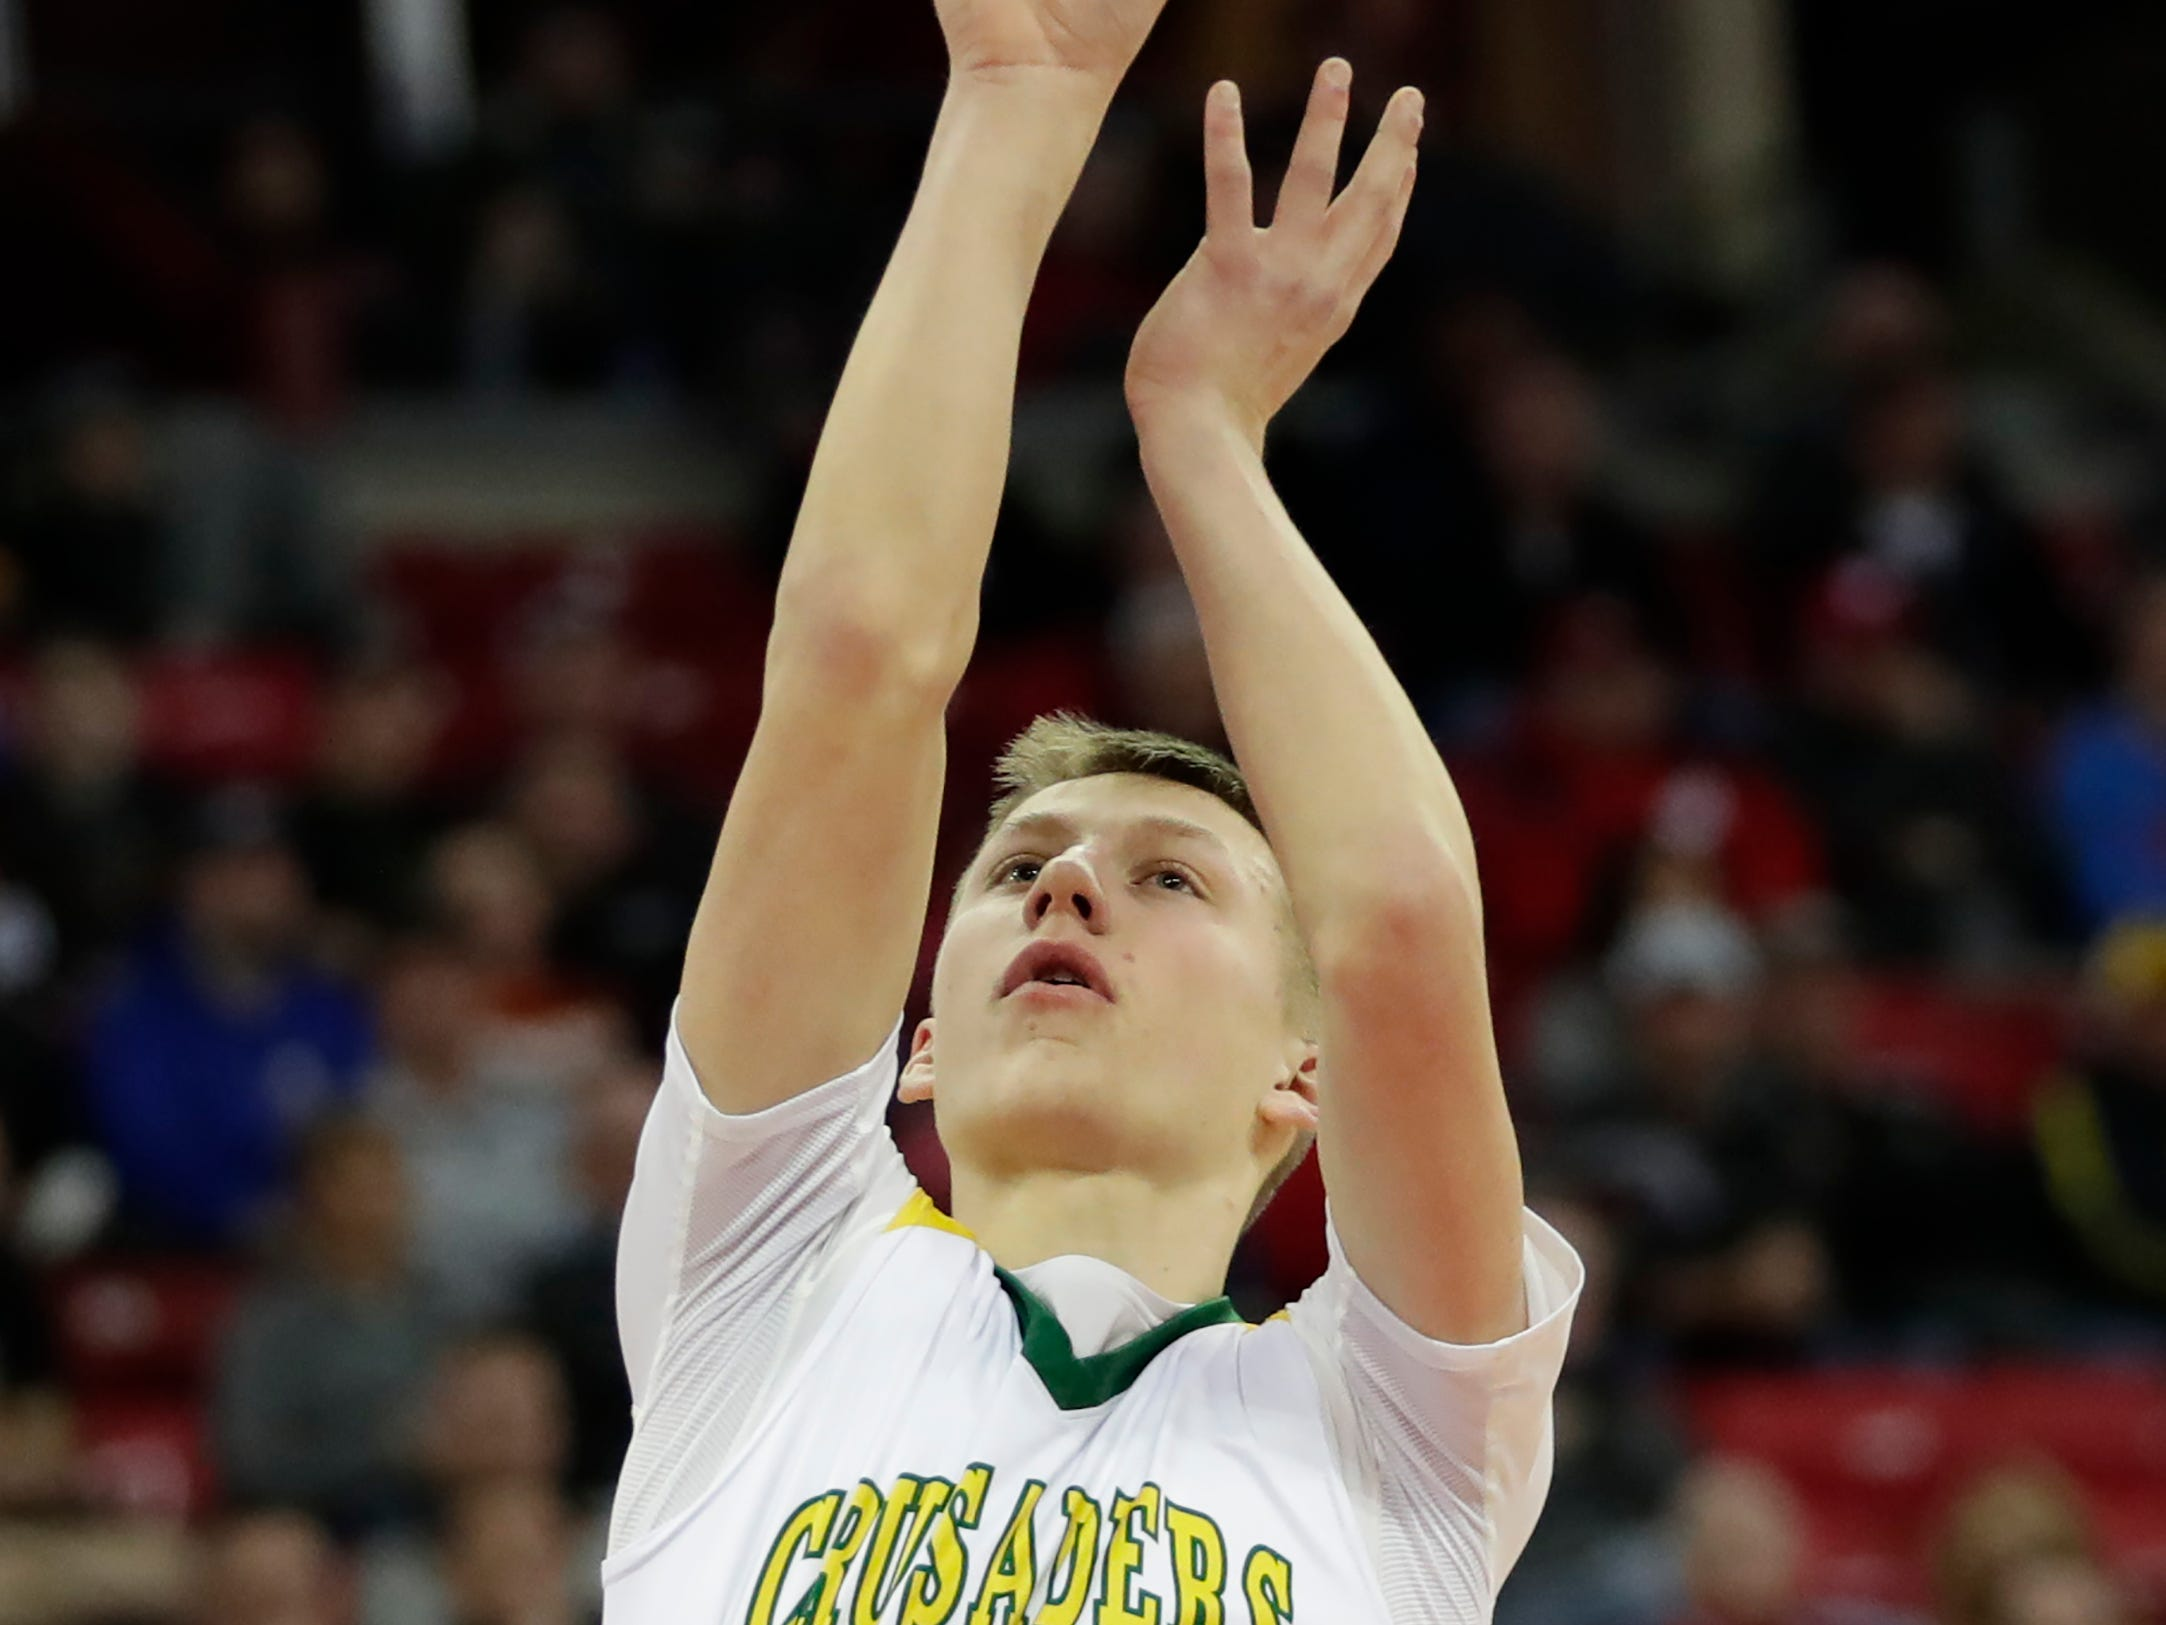 Sheboygan Area Lutheran High School's Casey Verhagen (24) puts up a shot against McDonell Central Catholic High School during their WIAA Division 5 boys basketball state semifinal at the Kohl Center Friday, March 15, 2019, in Madison, Wis.